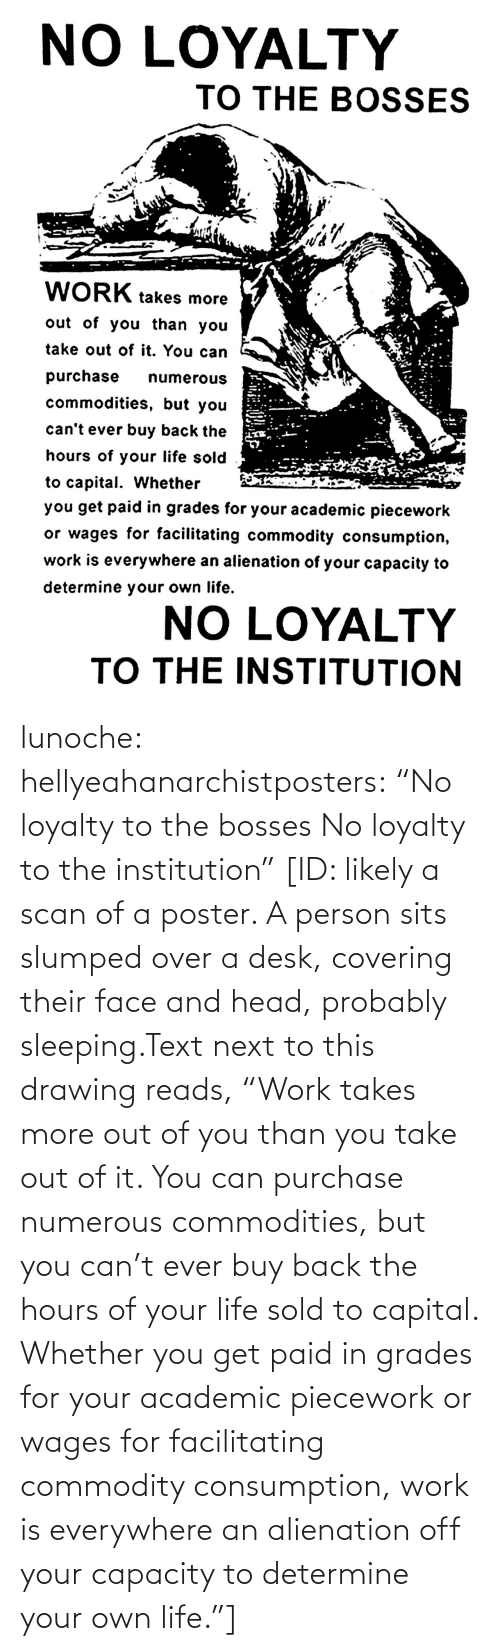 "Desk: lunoche:  hellyeahanarchistposters: ""No loyalty to the bosses No loyalty to the institution""   [ID: likely a scan of a poster. A person sits slumped over a desk, covering their face and head, probably sleeping.Text next to this drawing reads, ""Work takes more out of you than you take out of it. You can purchase numerous commodities, but you can't ever buy back the hours of your life sold to capital. Whether you get paid in grades for your academic piecework or wages for facilitating commodity consumption, work is everywhere an alienation off your capacity to determine your own life.""]"